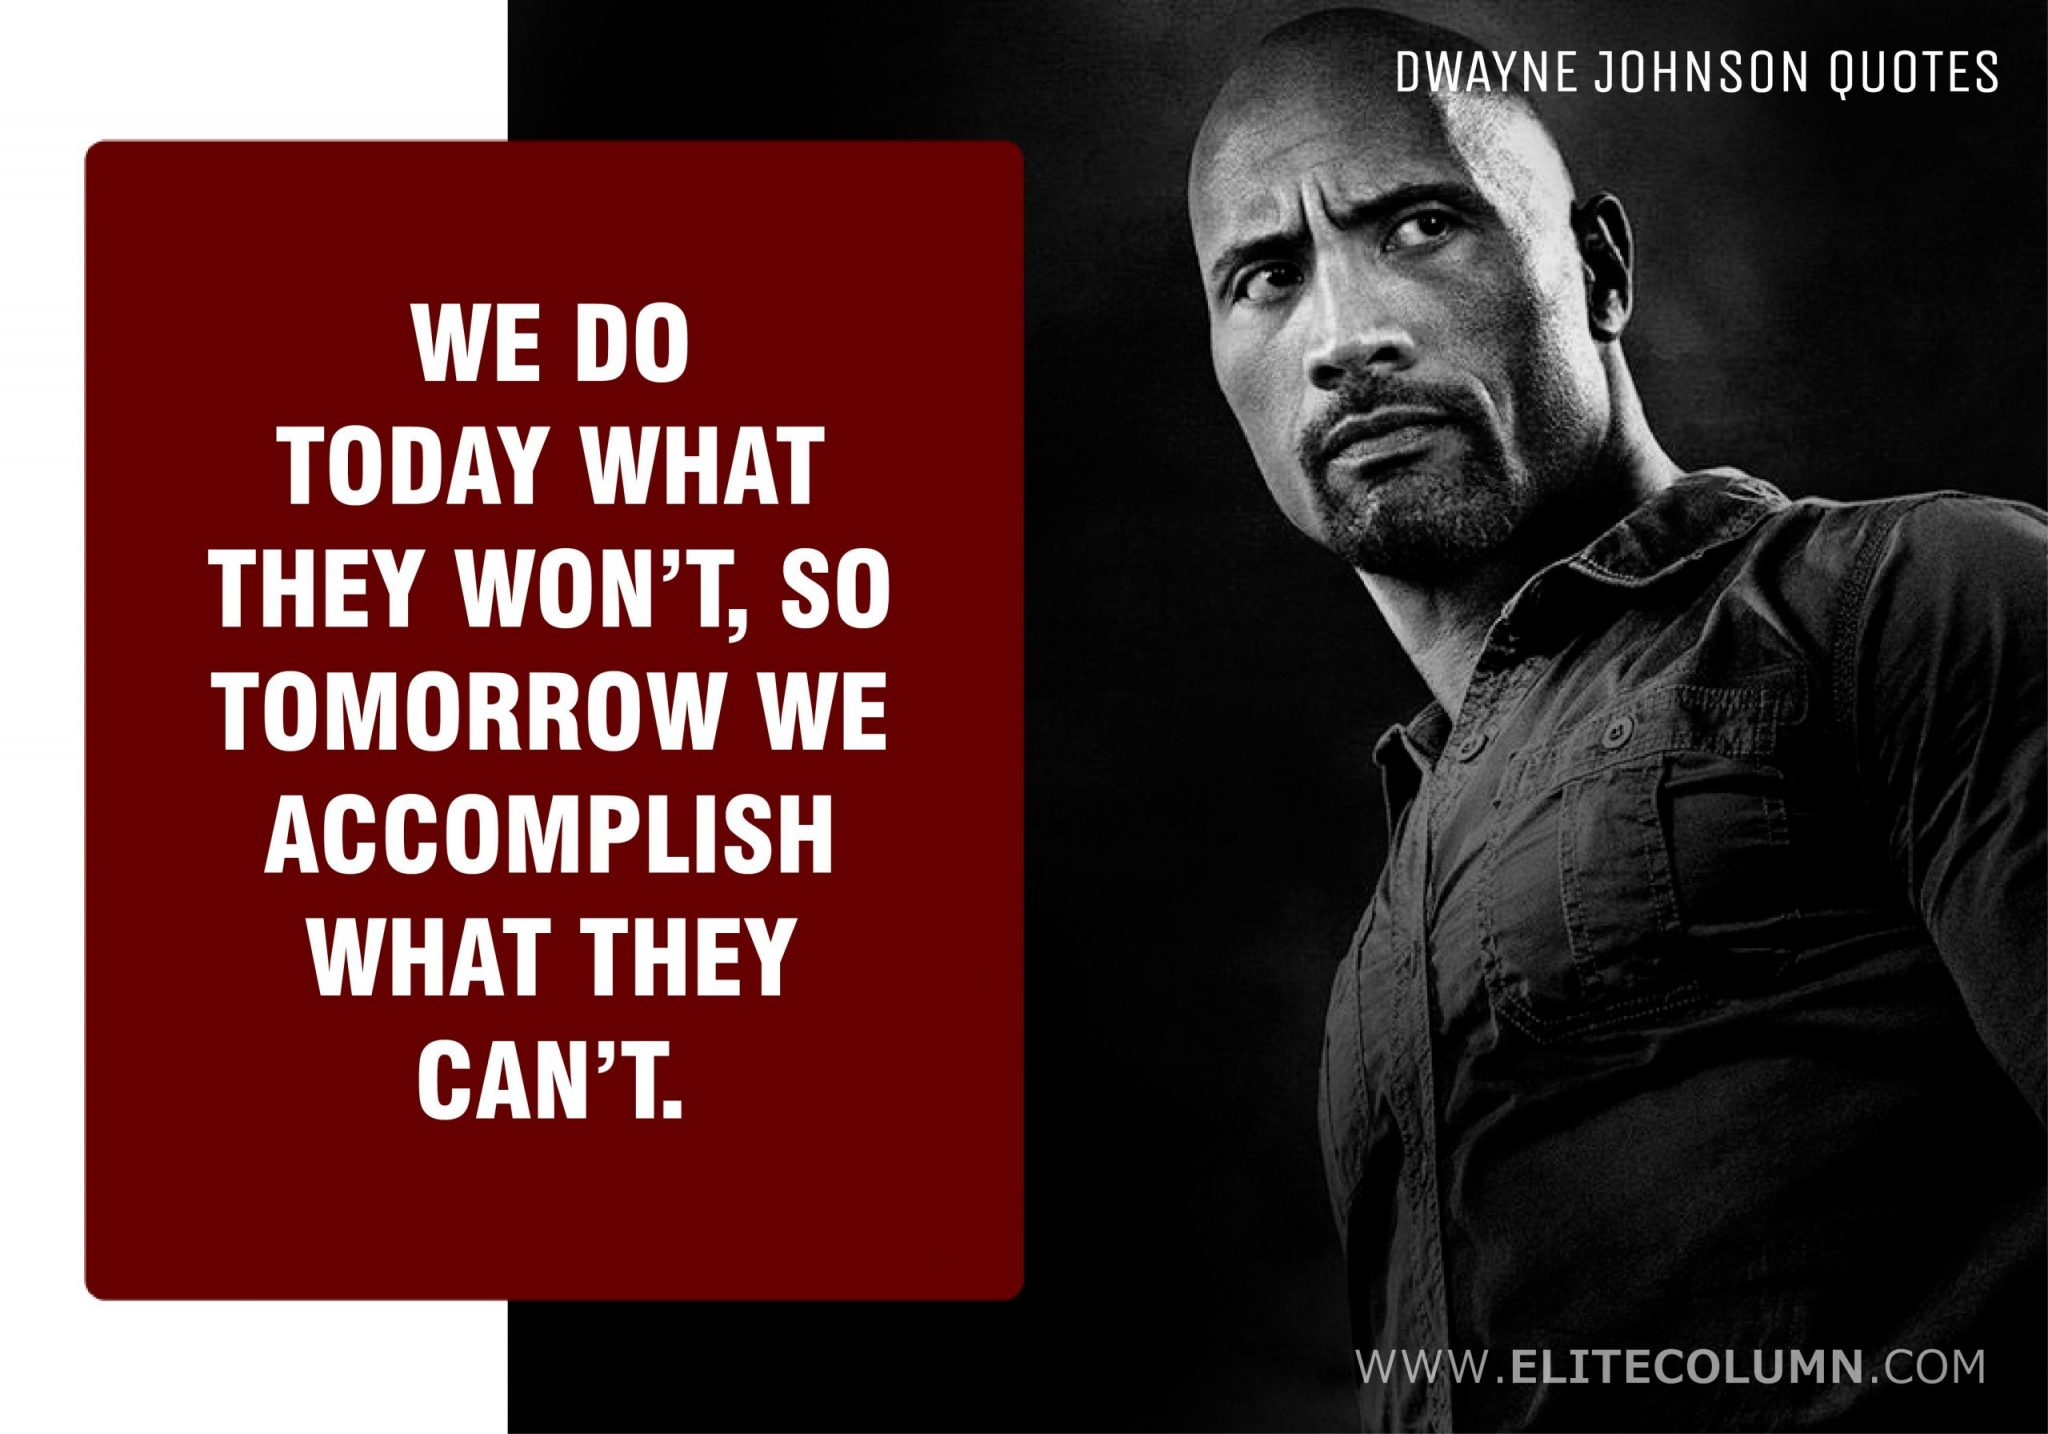 Dwayne Johnson Quotes (7)